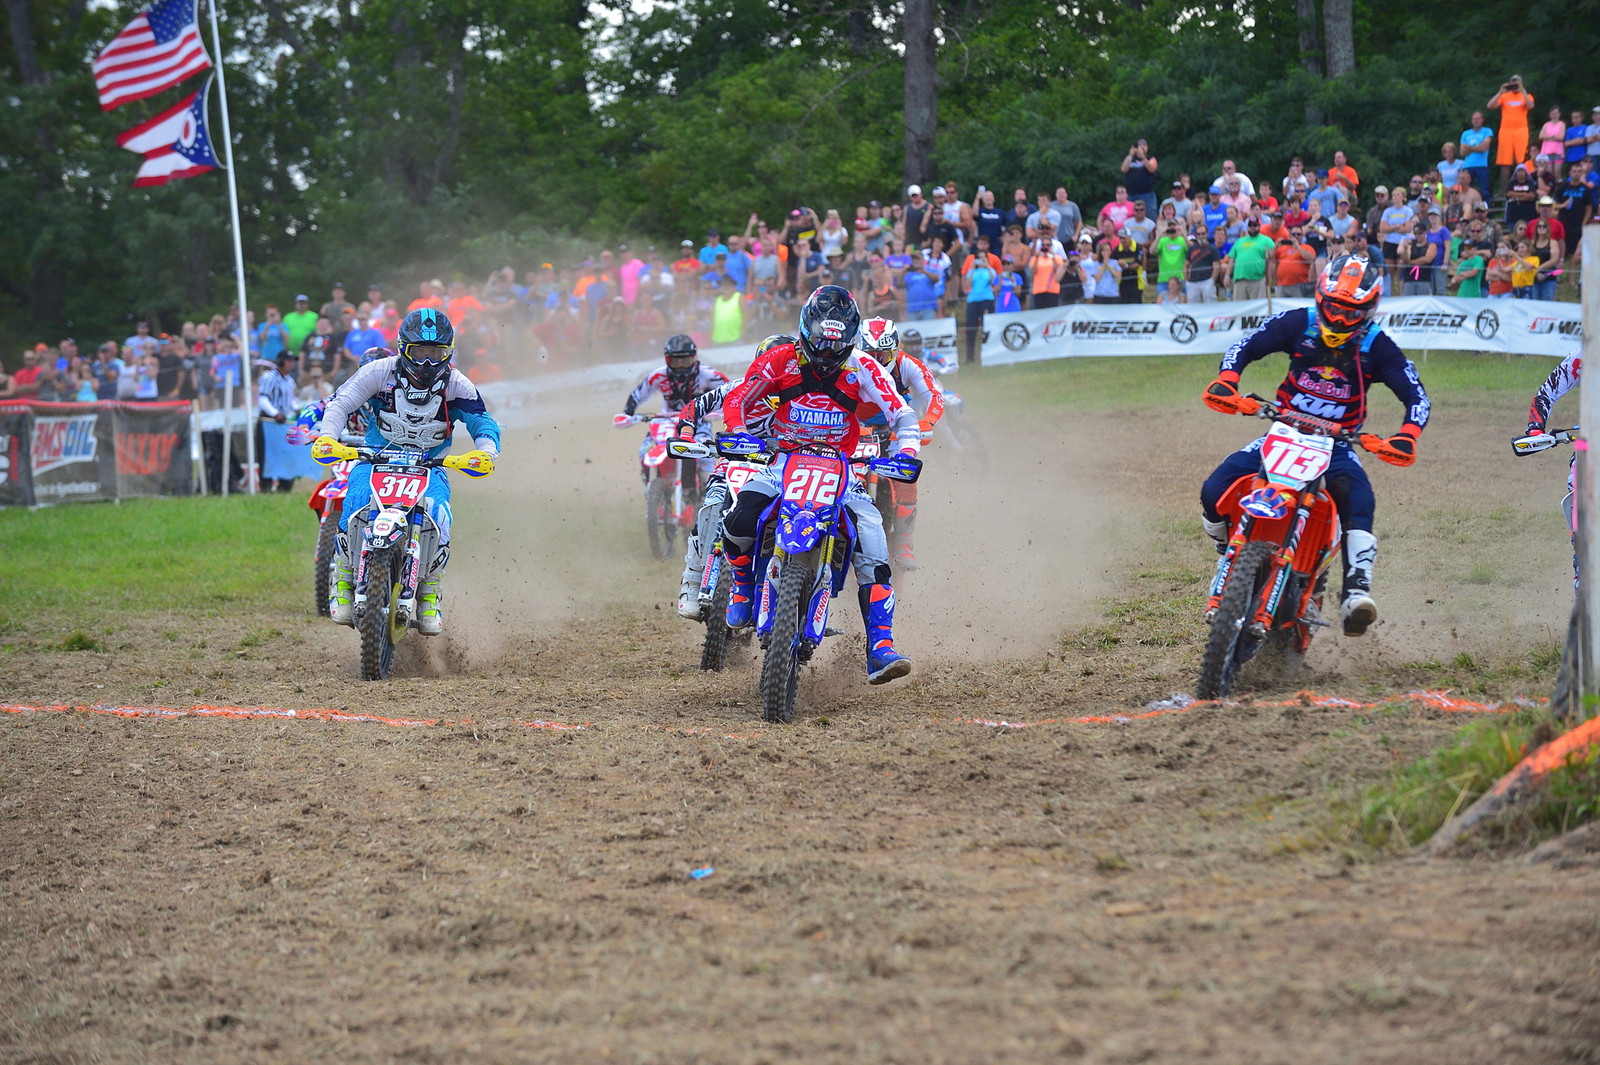 John Penton GNCC Photo Gallery - John Penton GNCC - Motocross Pictures - Vital MX